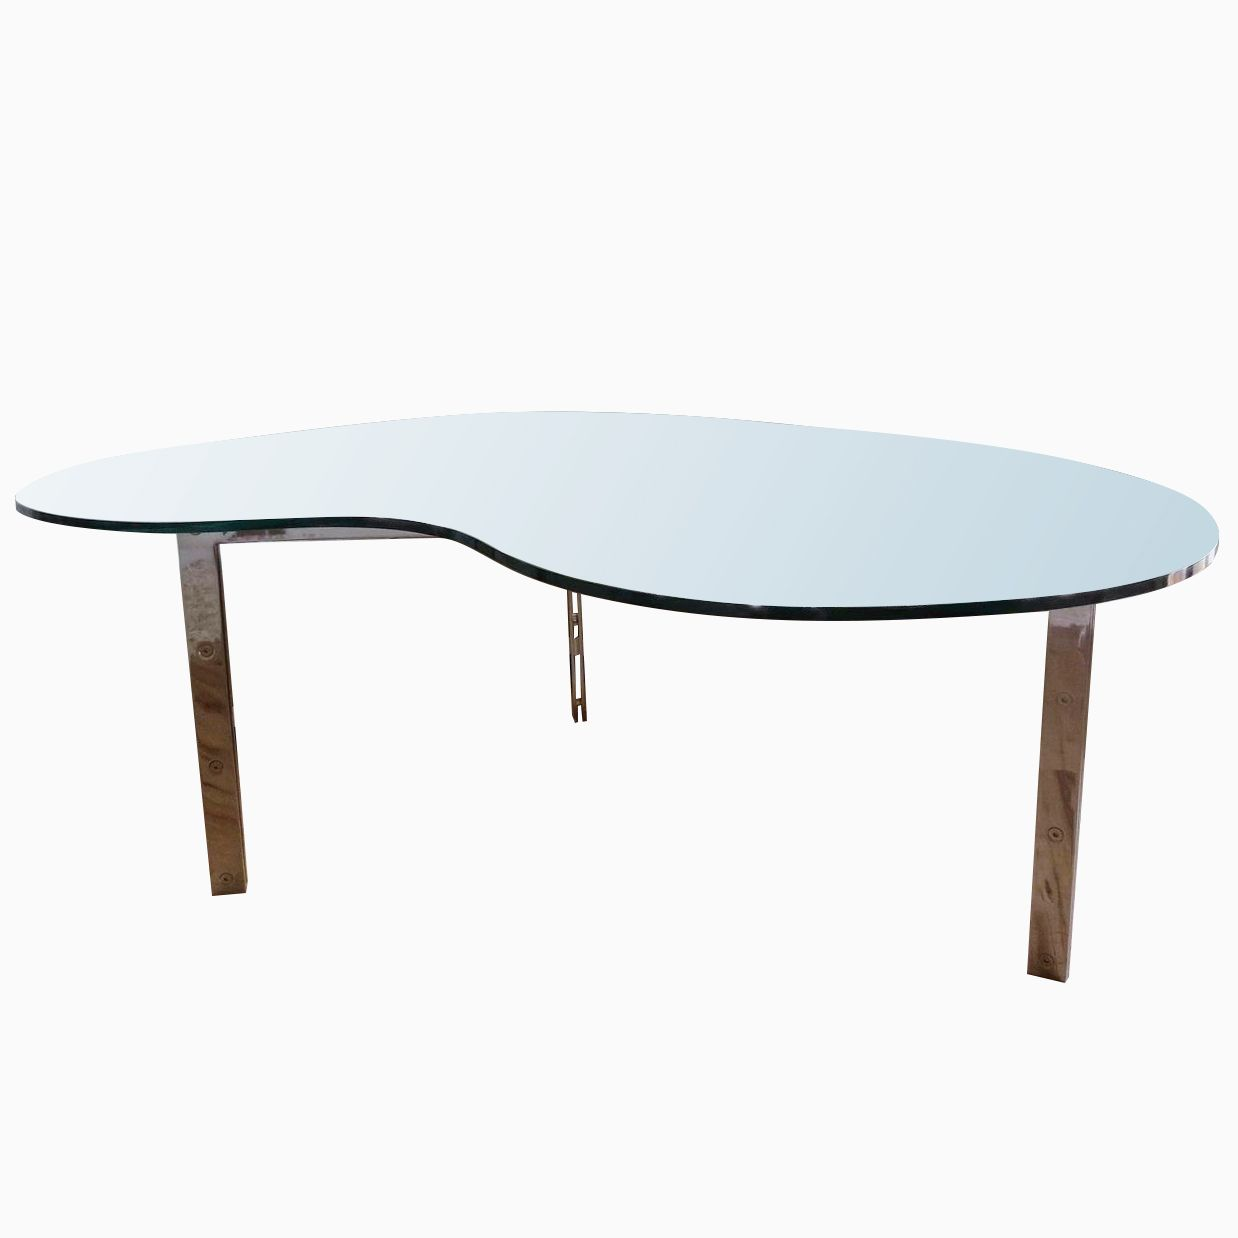 metal modern sculptural polished stainless steel dining table base